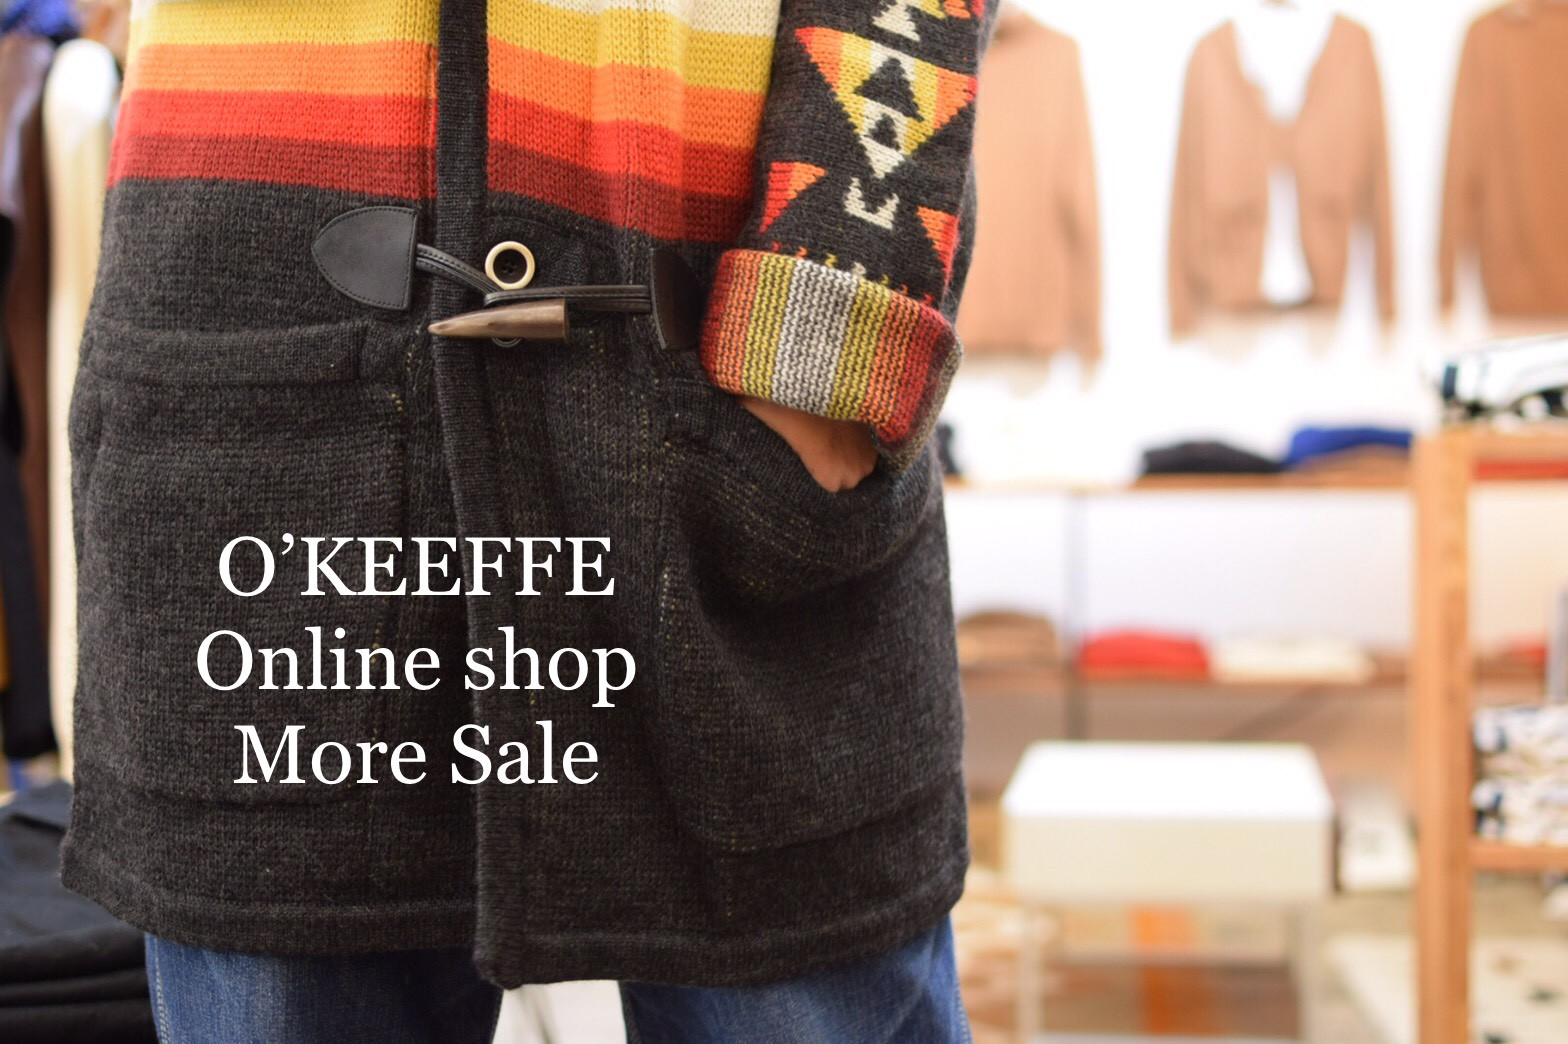 Online Shop More Sale 開催!!